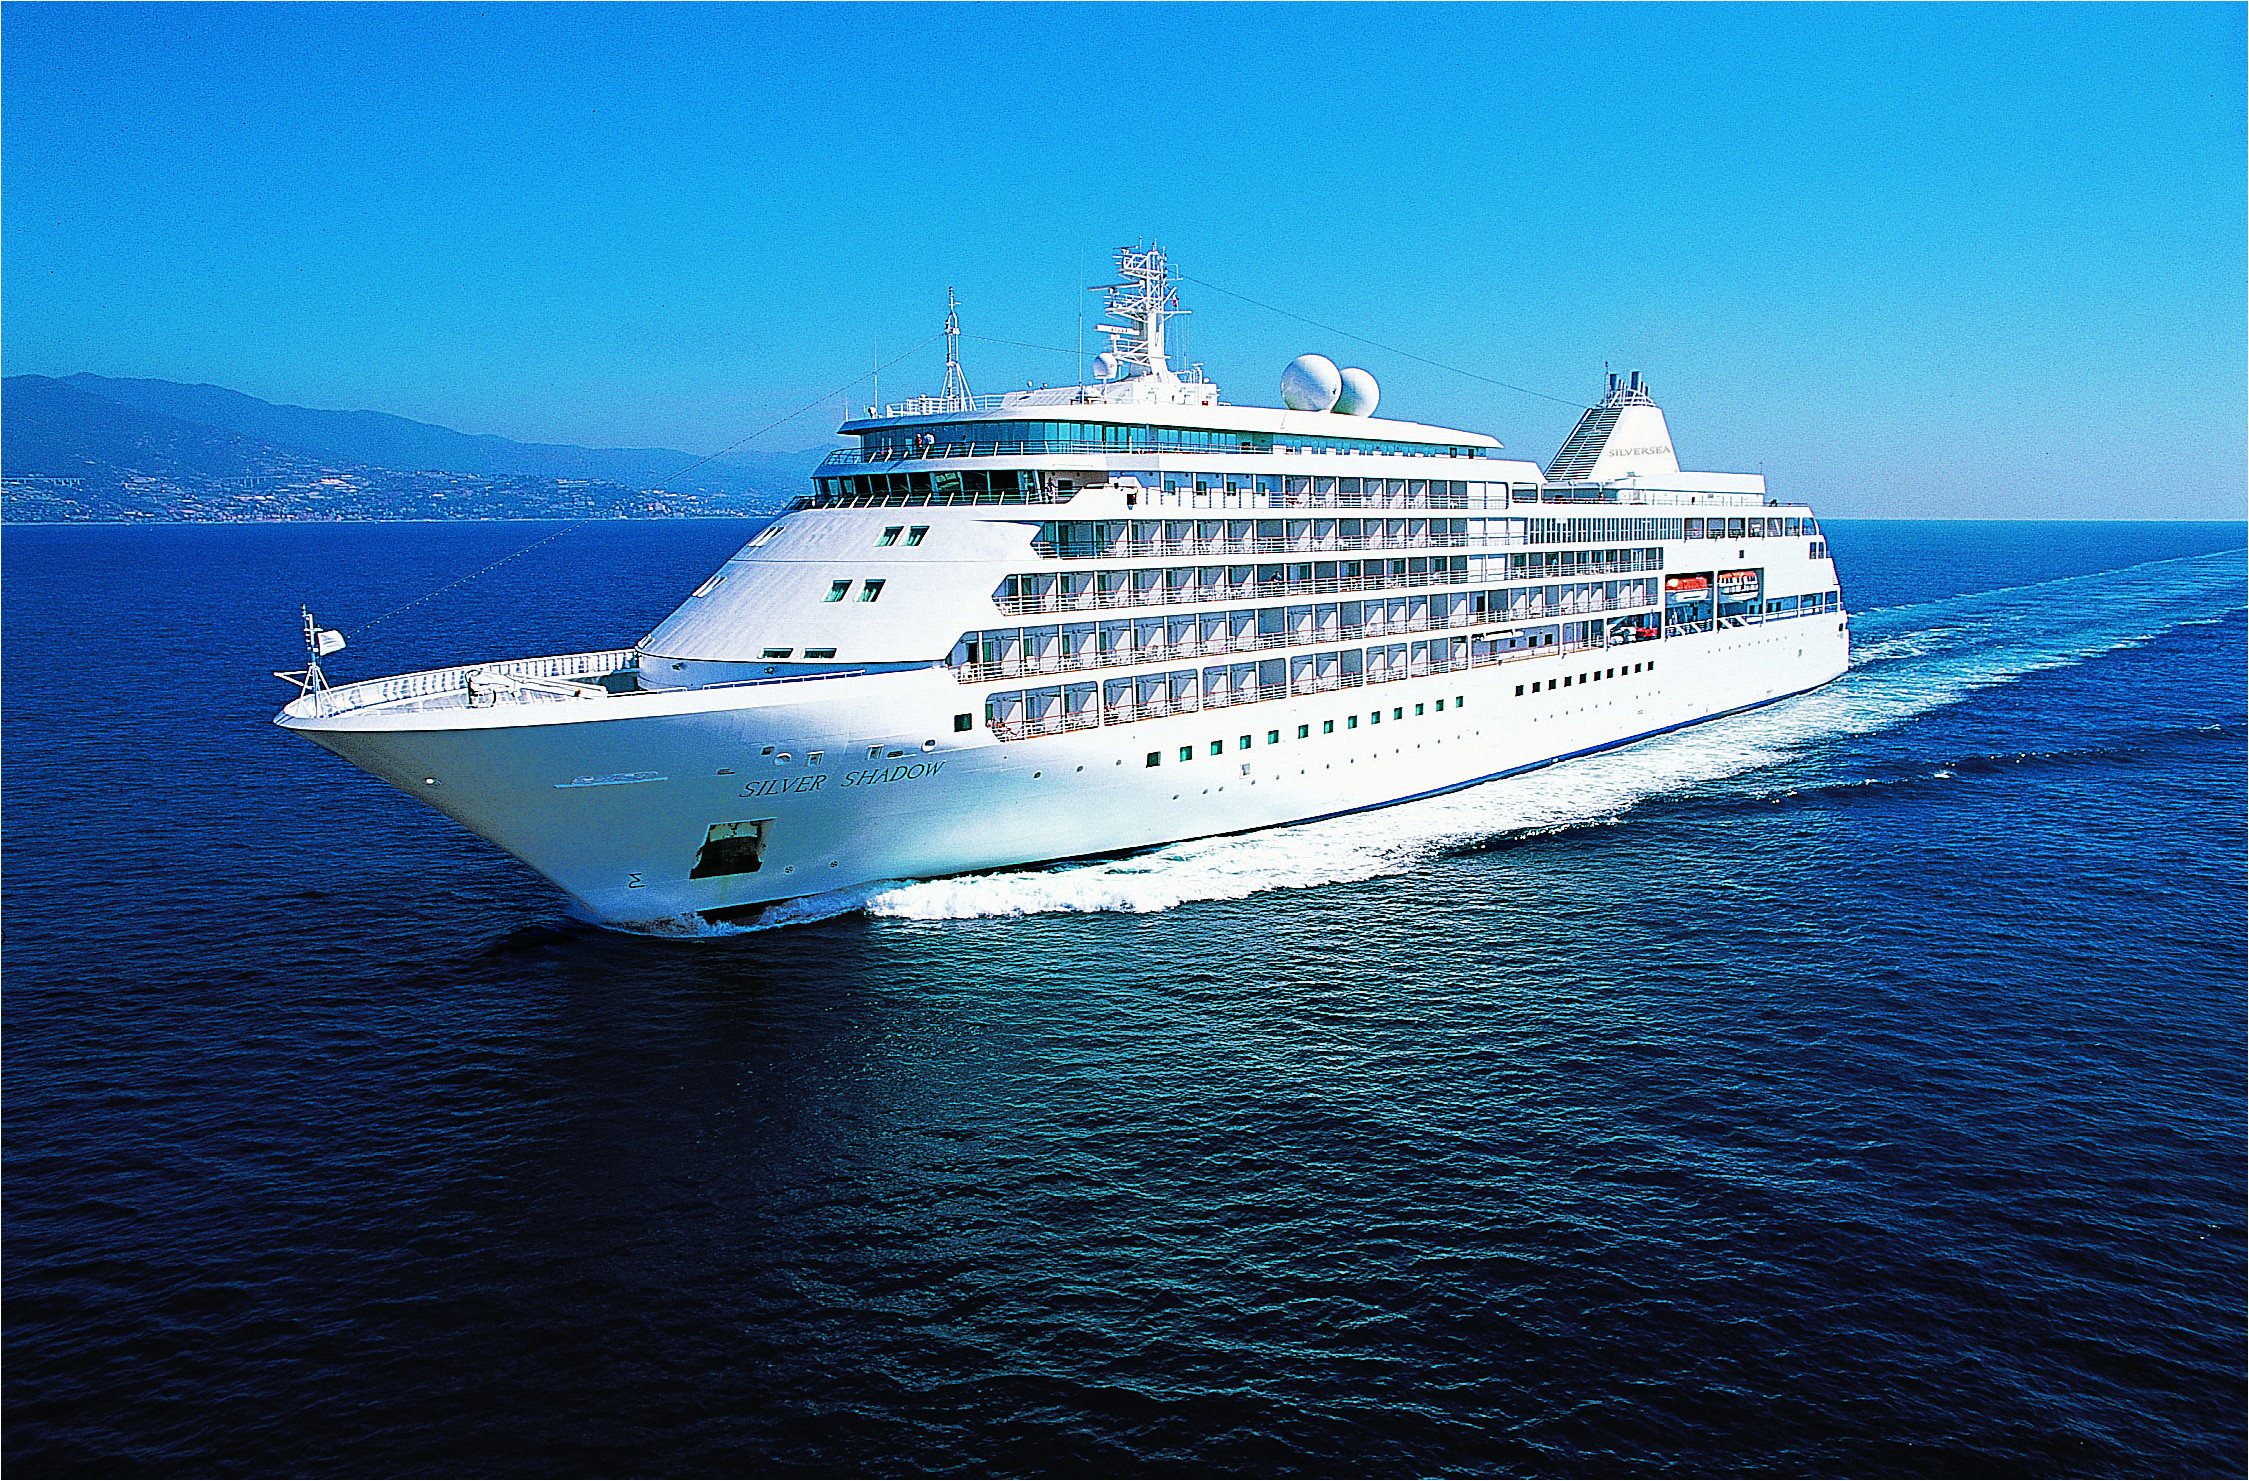 silversea s millennium class ships silver shadow and her sister ship silver whisper are built with proportions slightly larger in size than the two